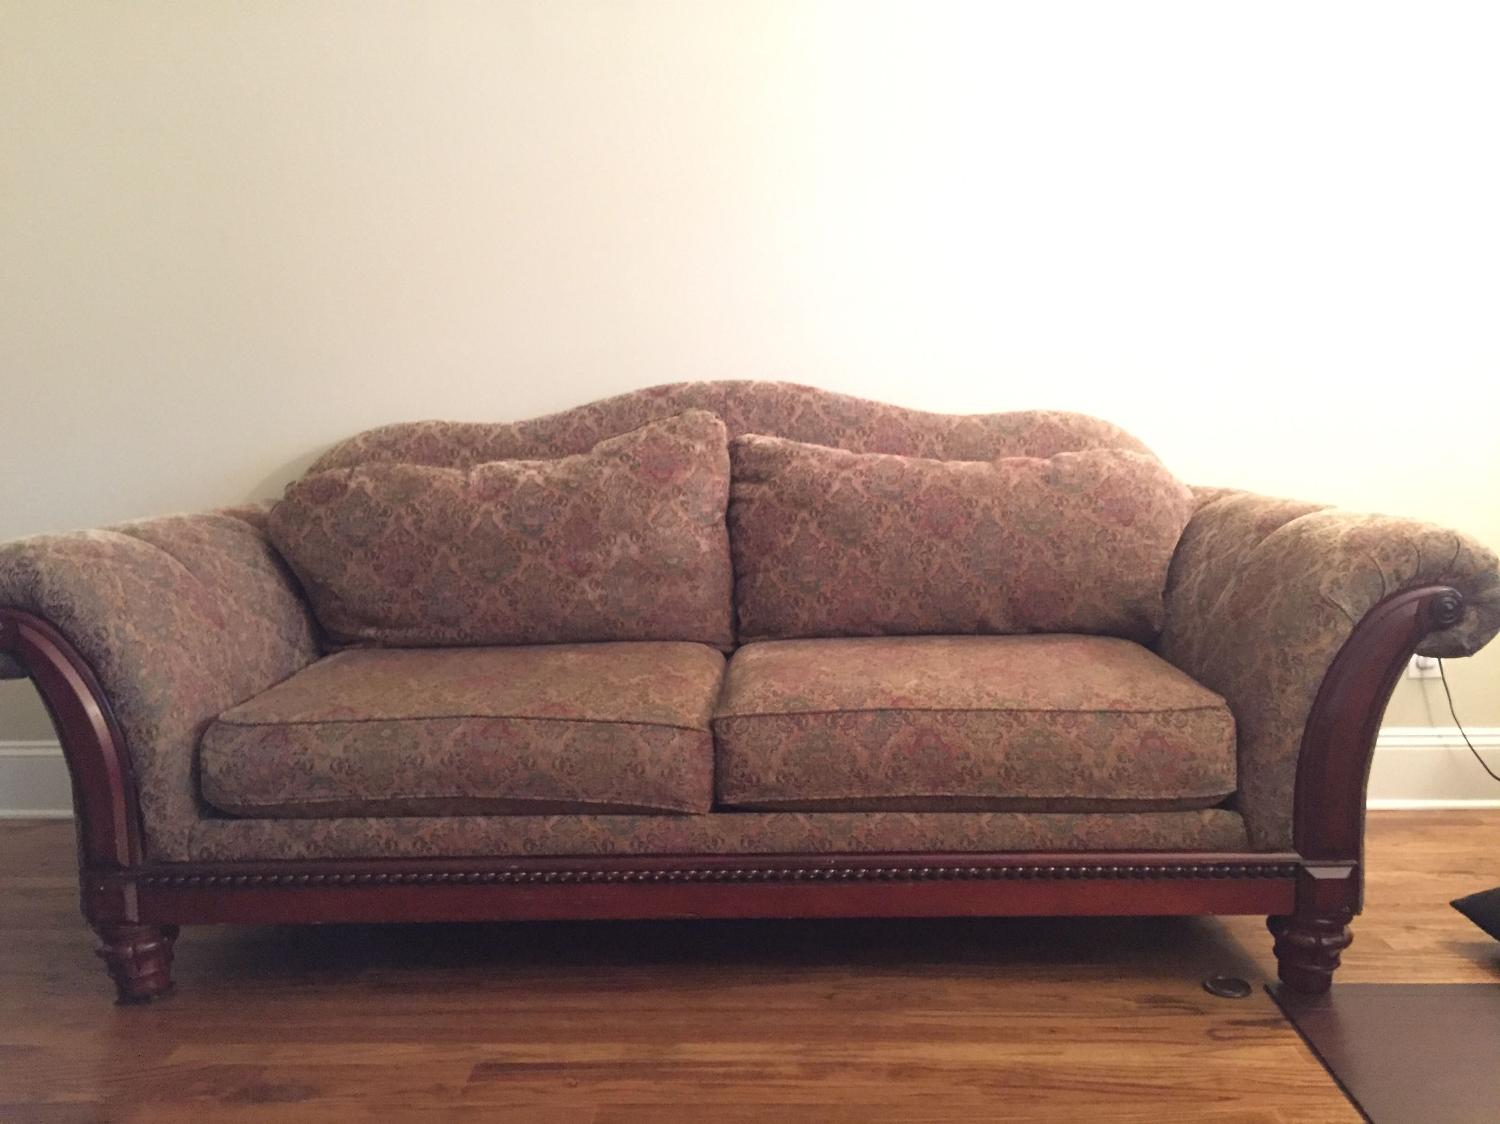 Best Sofa Love Seat And Recliner For 500 Obo For Sale In Huntersville North Carolina For 2017